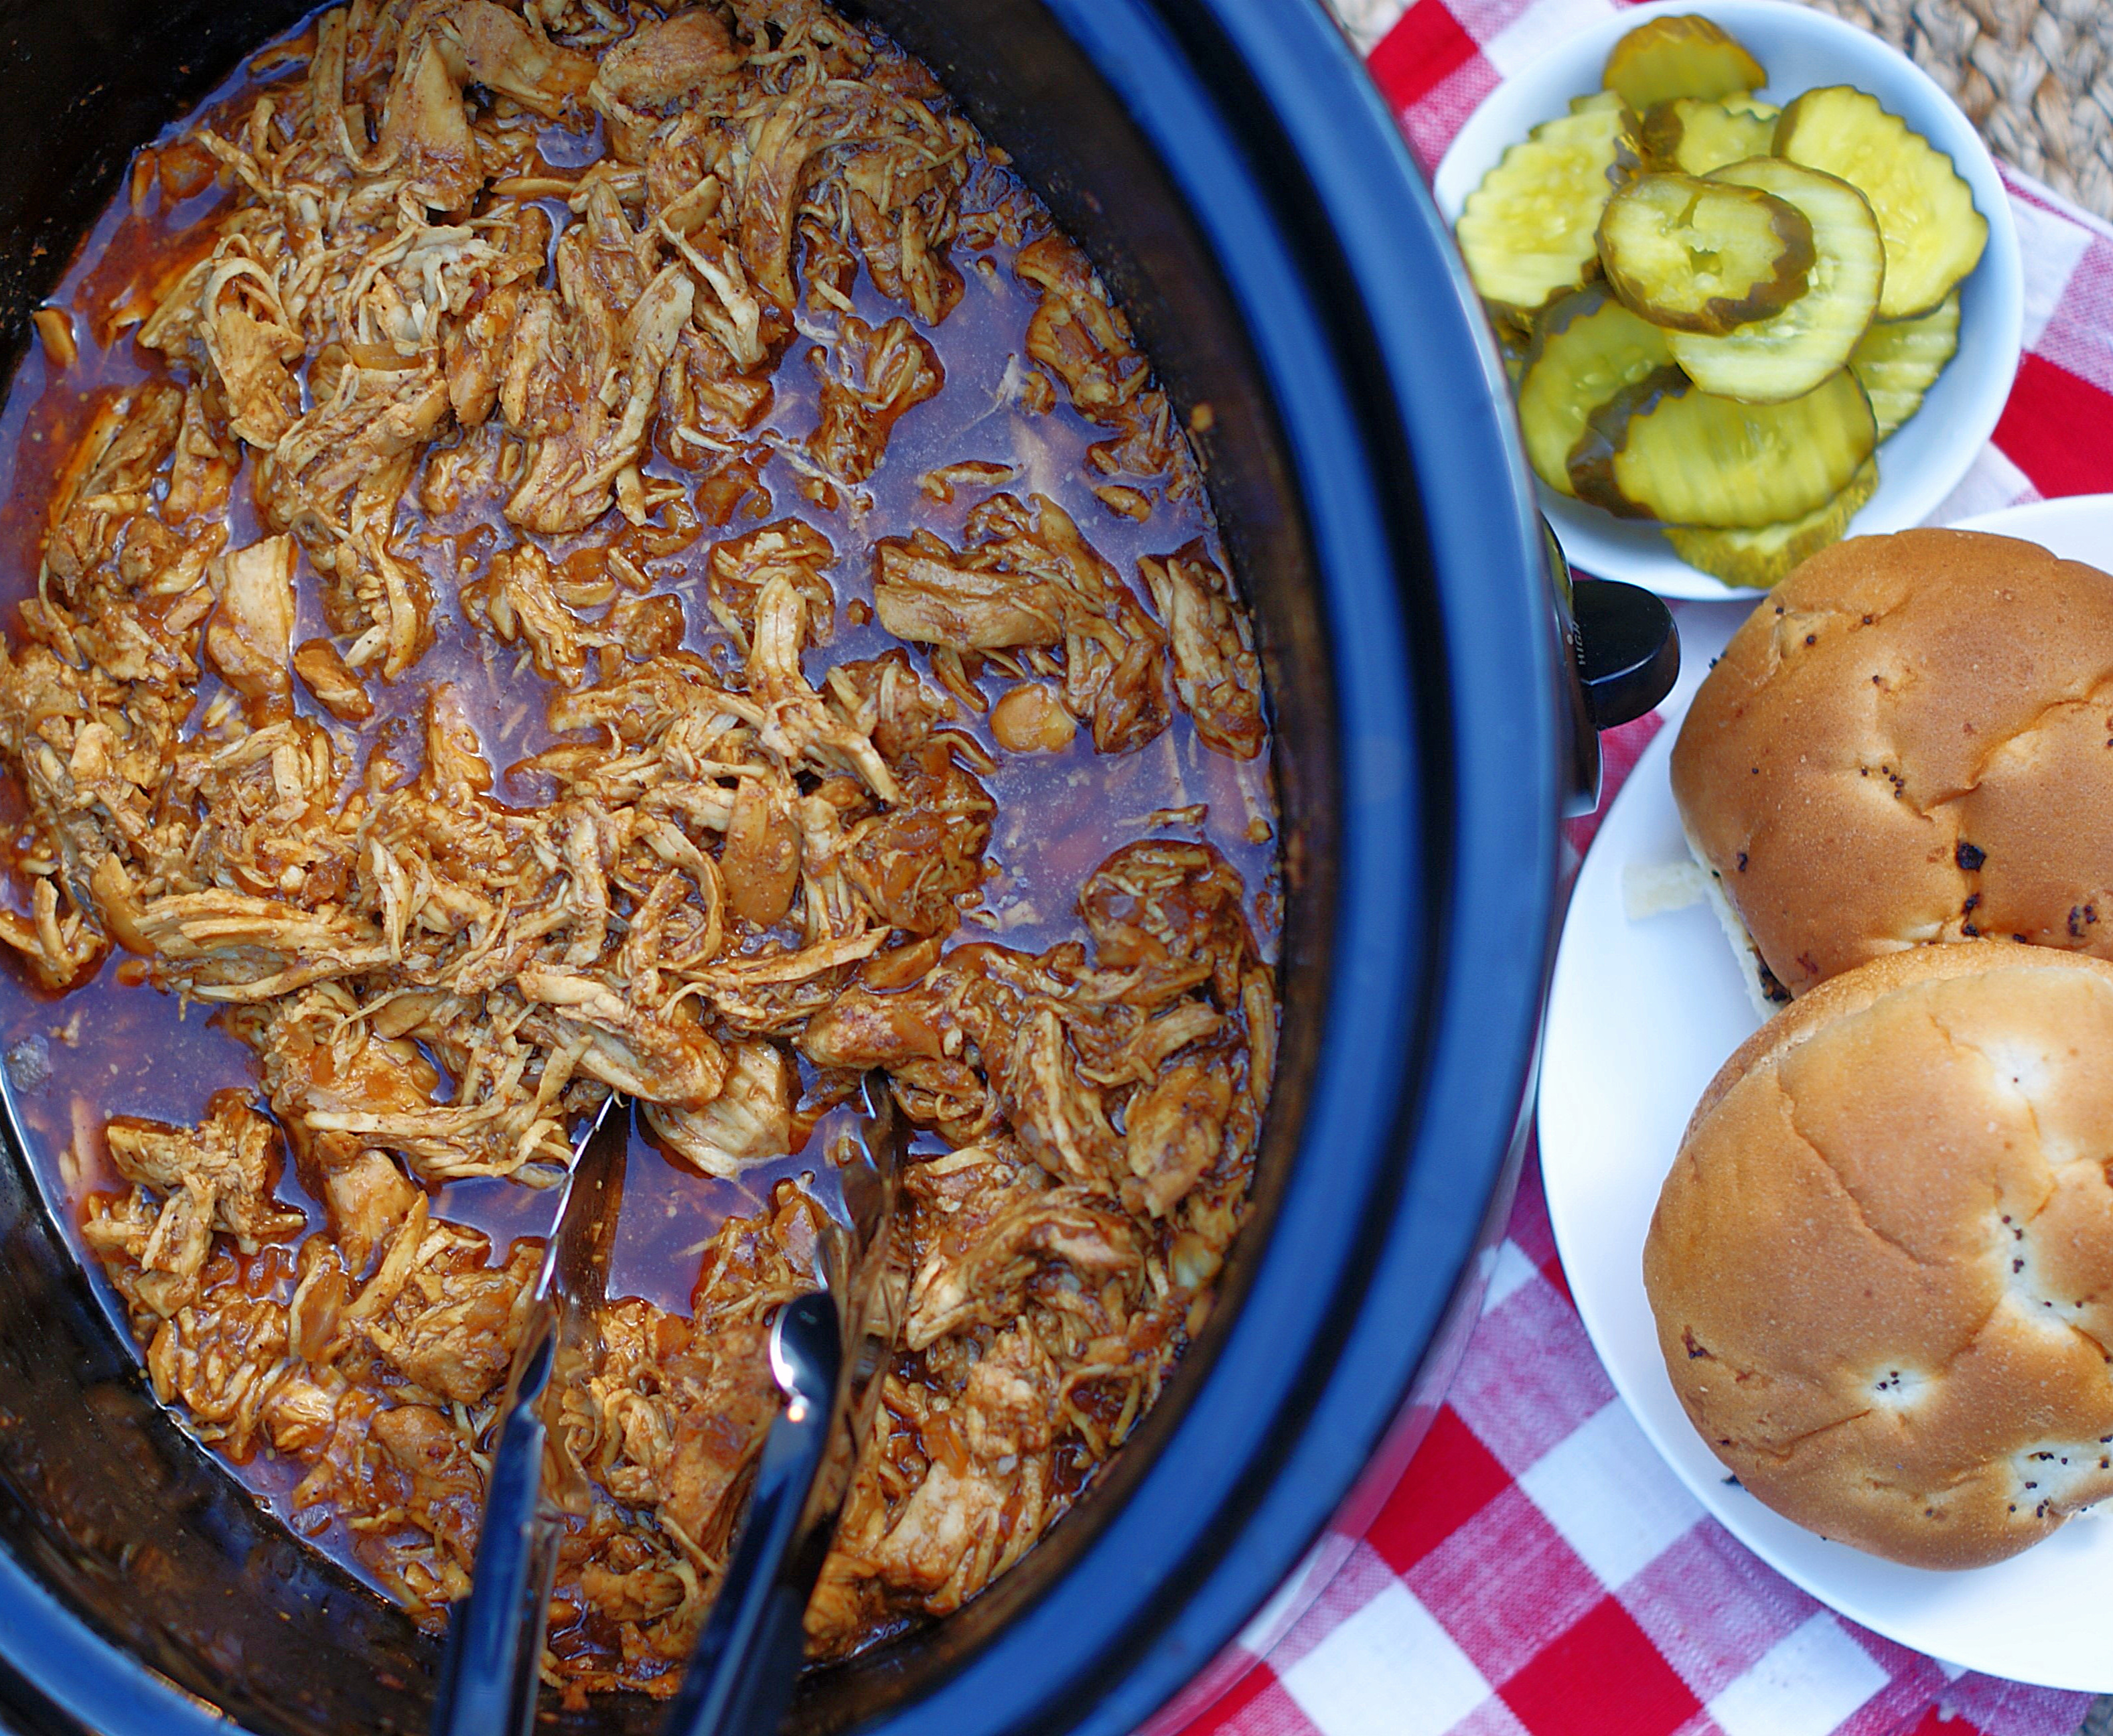 Finished BBQ shredded chicken in a crock pot with sandwich buns in the background.